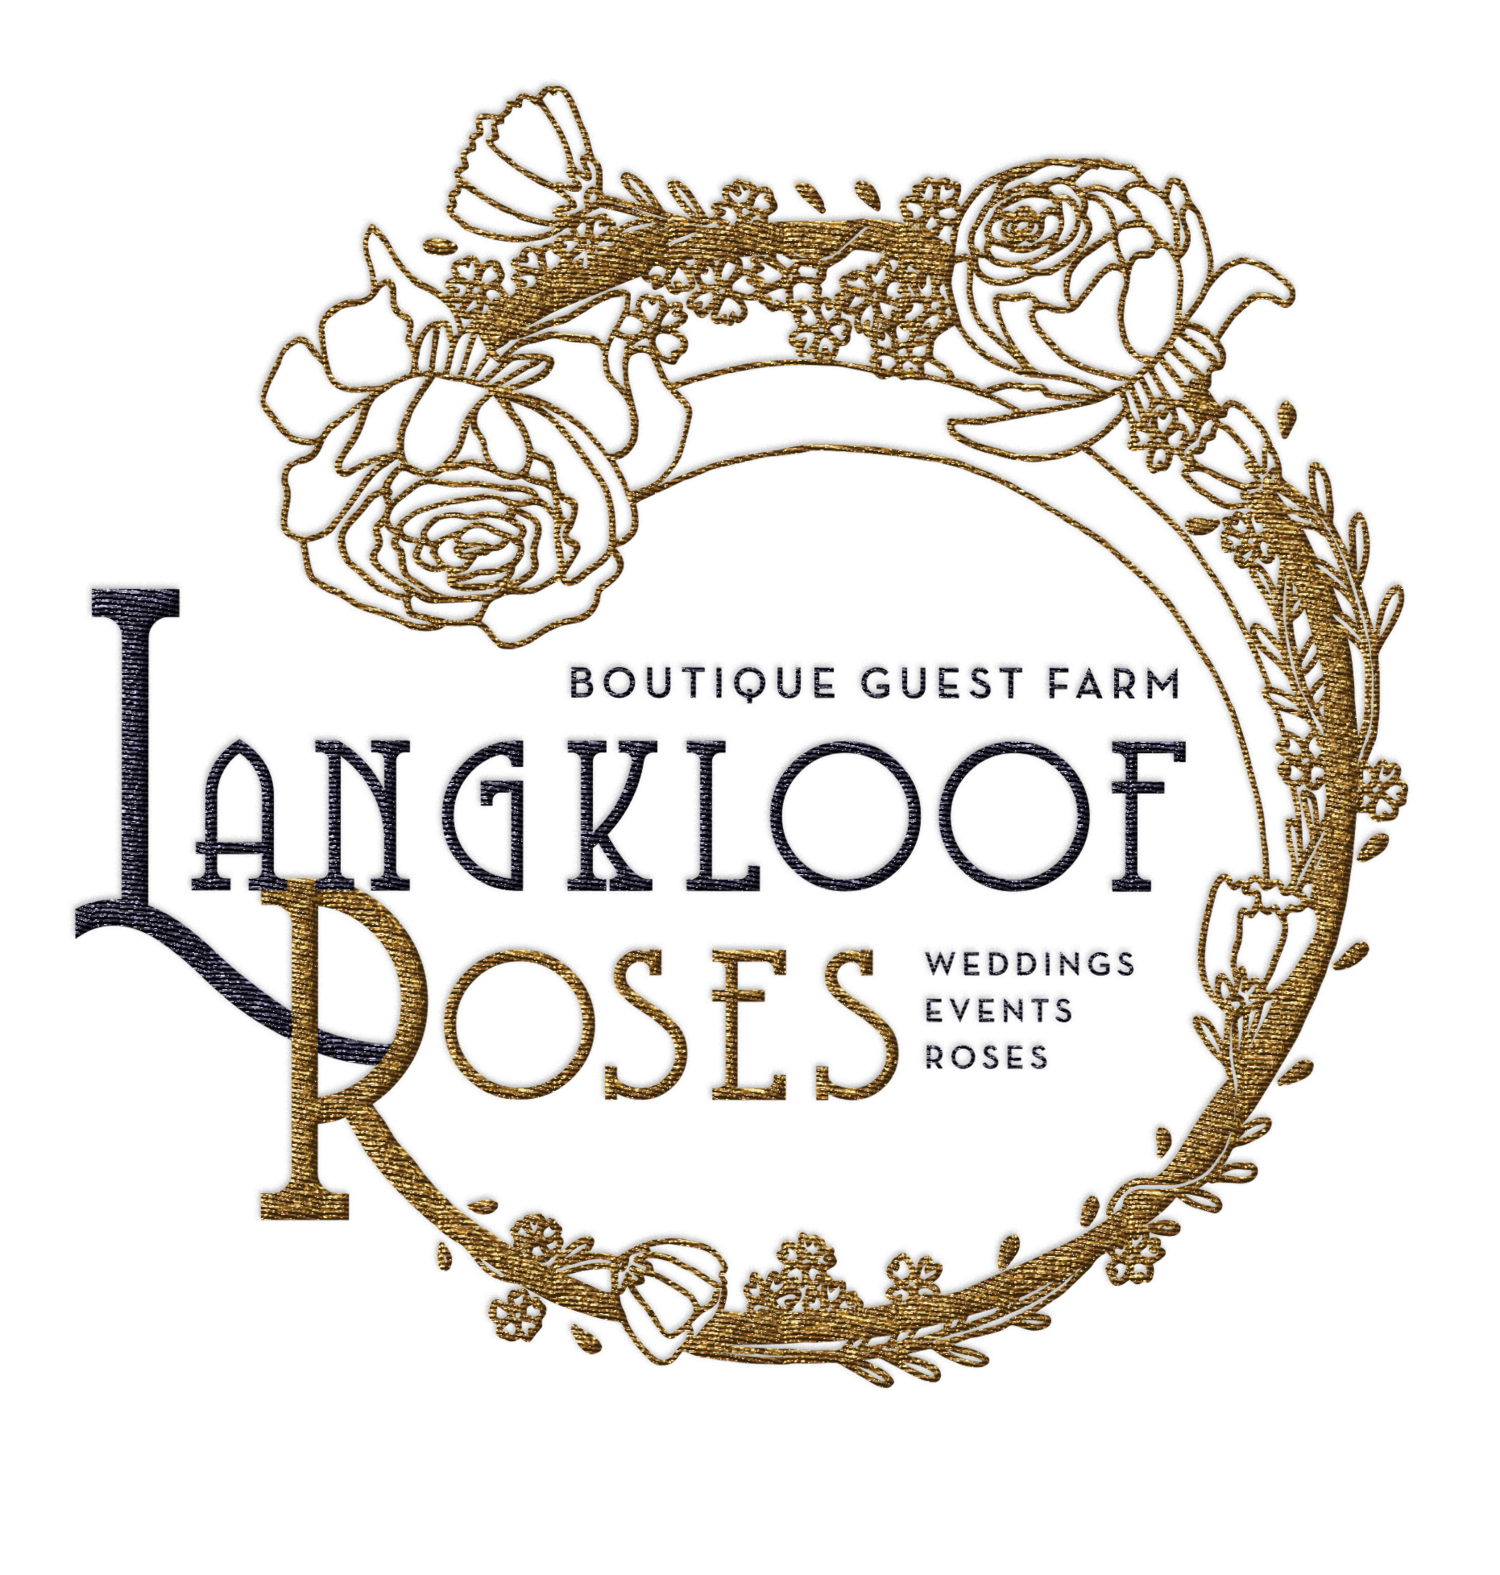 Langkloof Roses